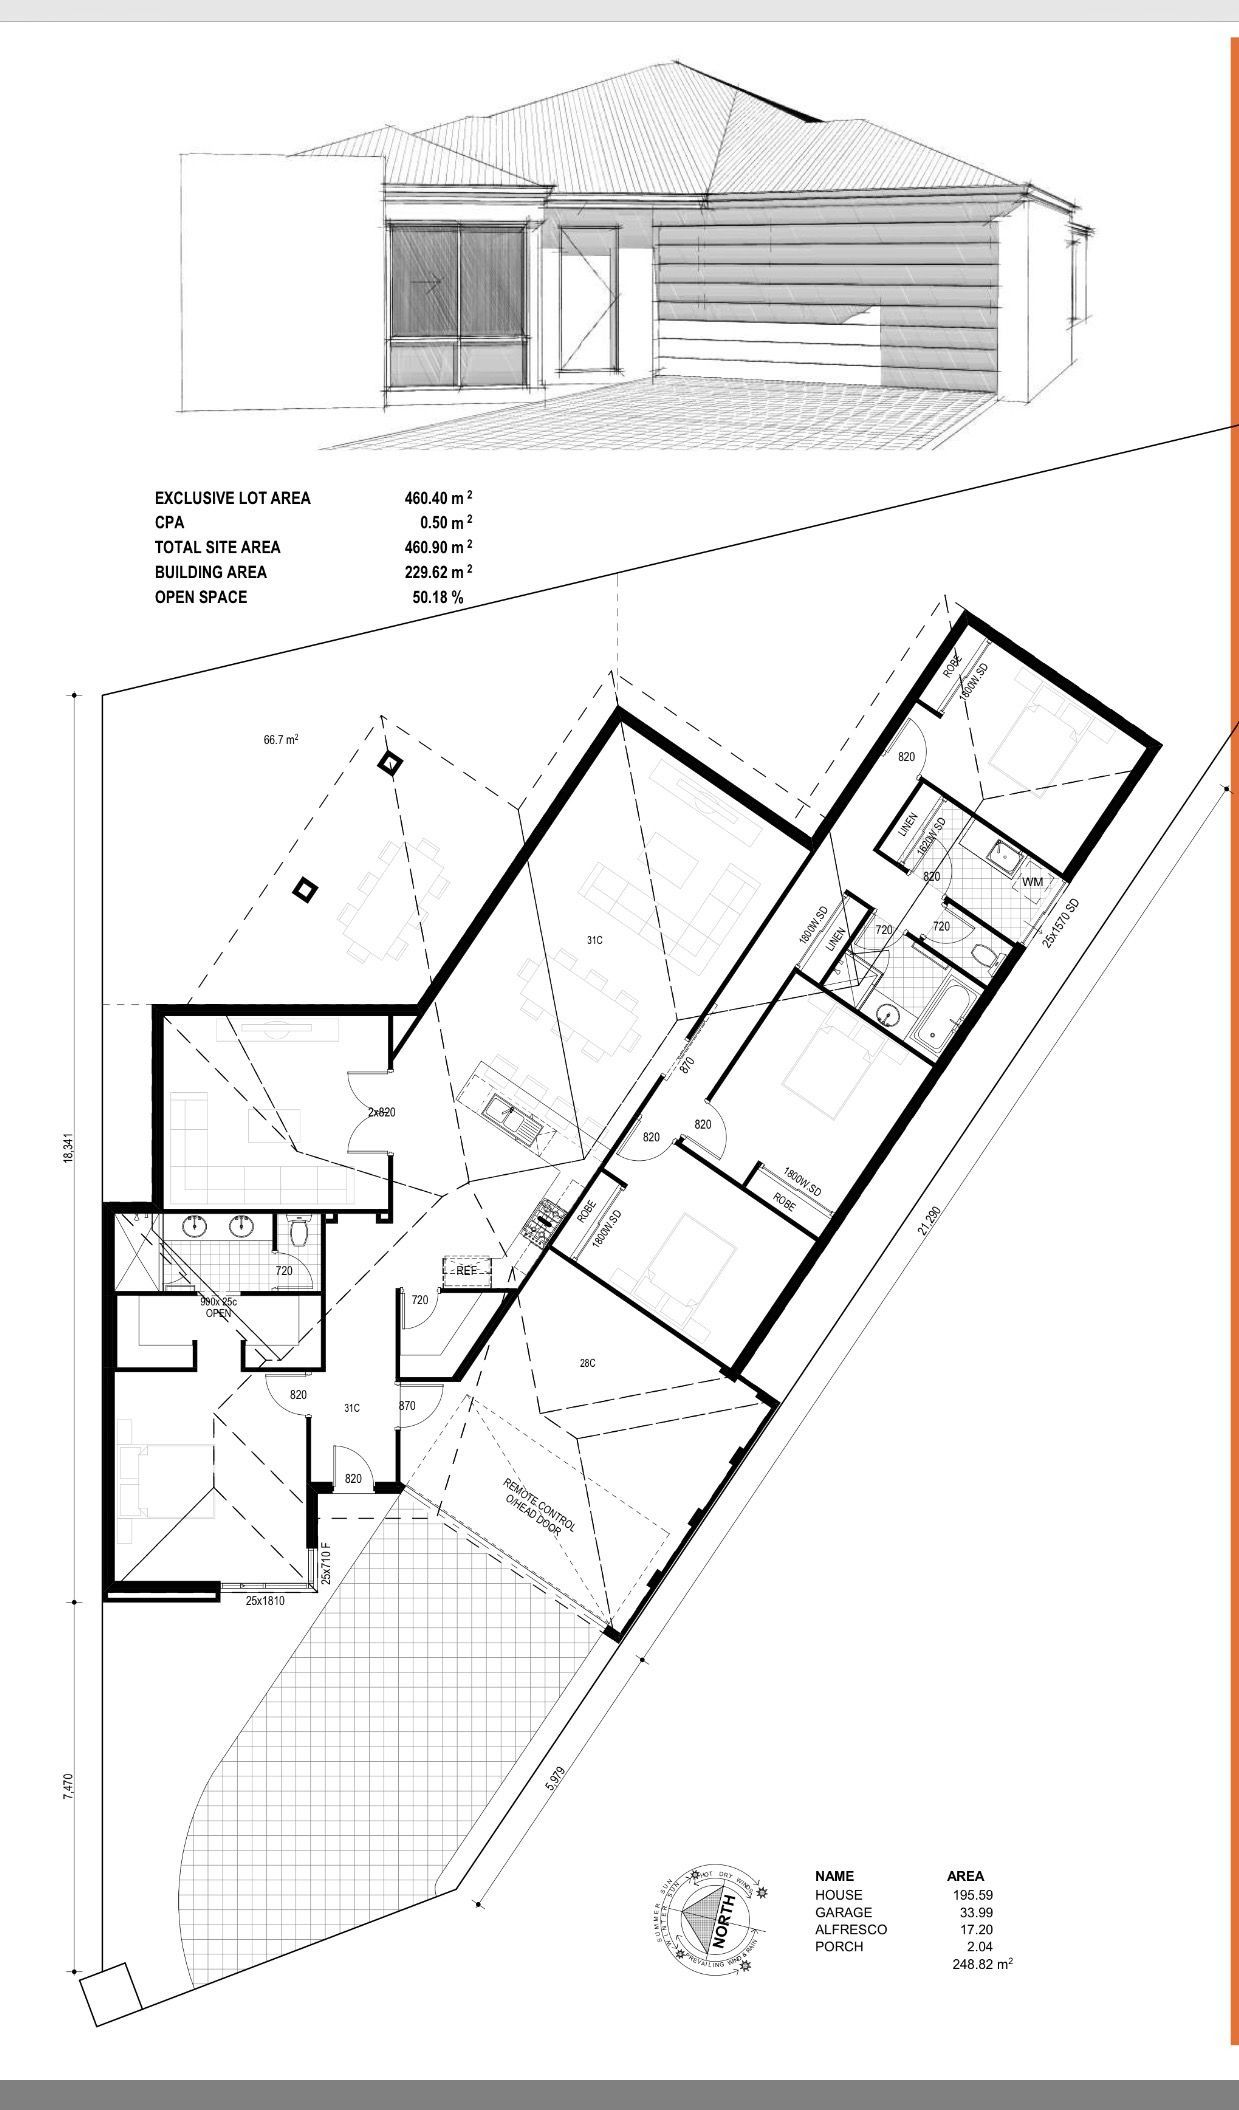 Architect House Plans Free 2020 In 2020 Plot Plan House Plans Online House Plans